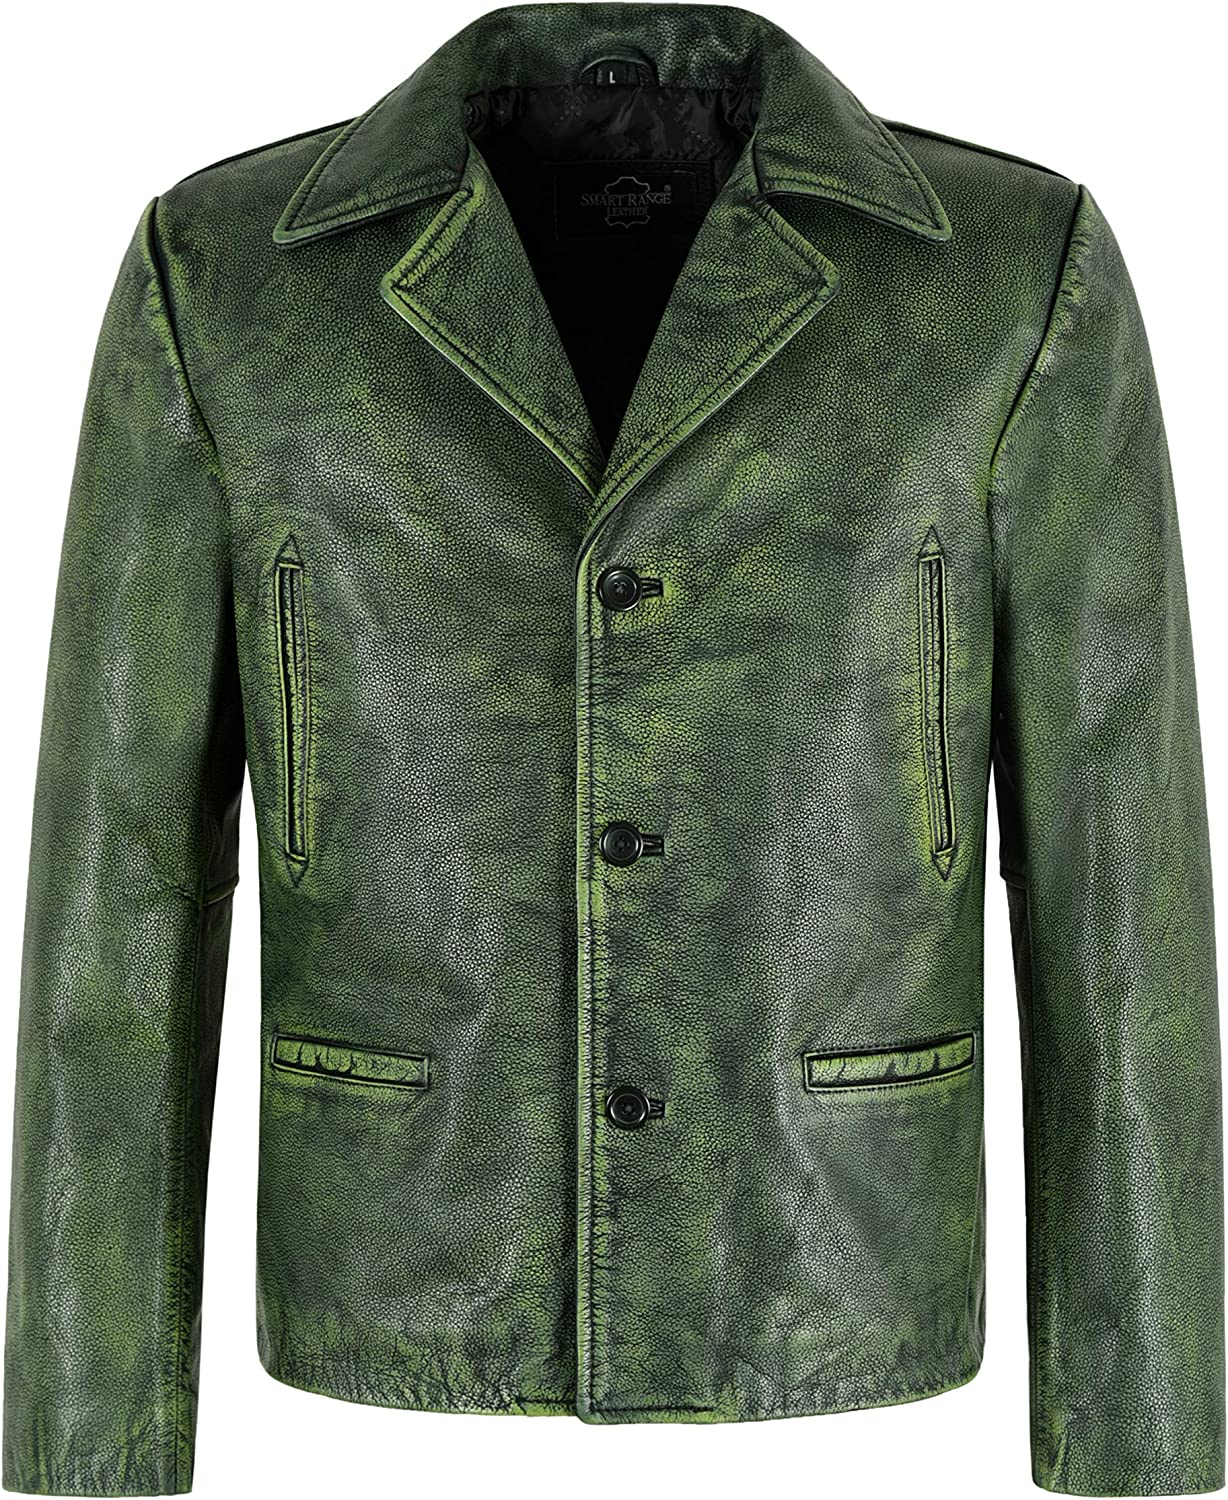 Mens 70's Green Vintage Classic Collared Blazer Real Cowhide Leather Jacket 4162